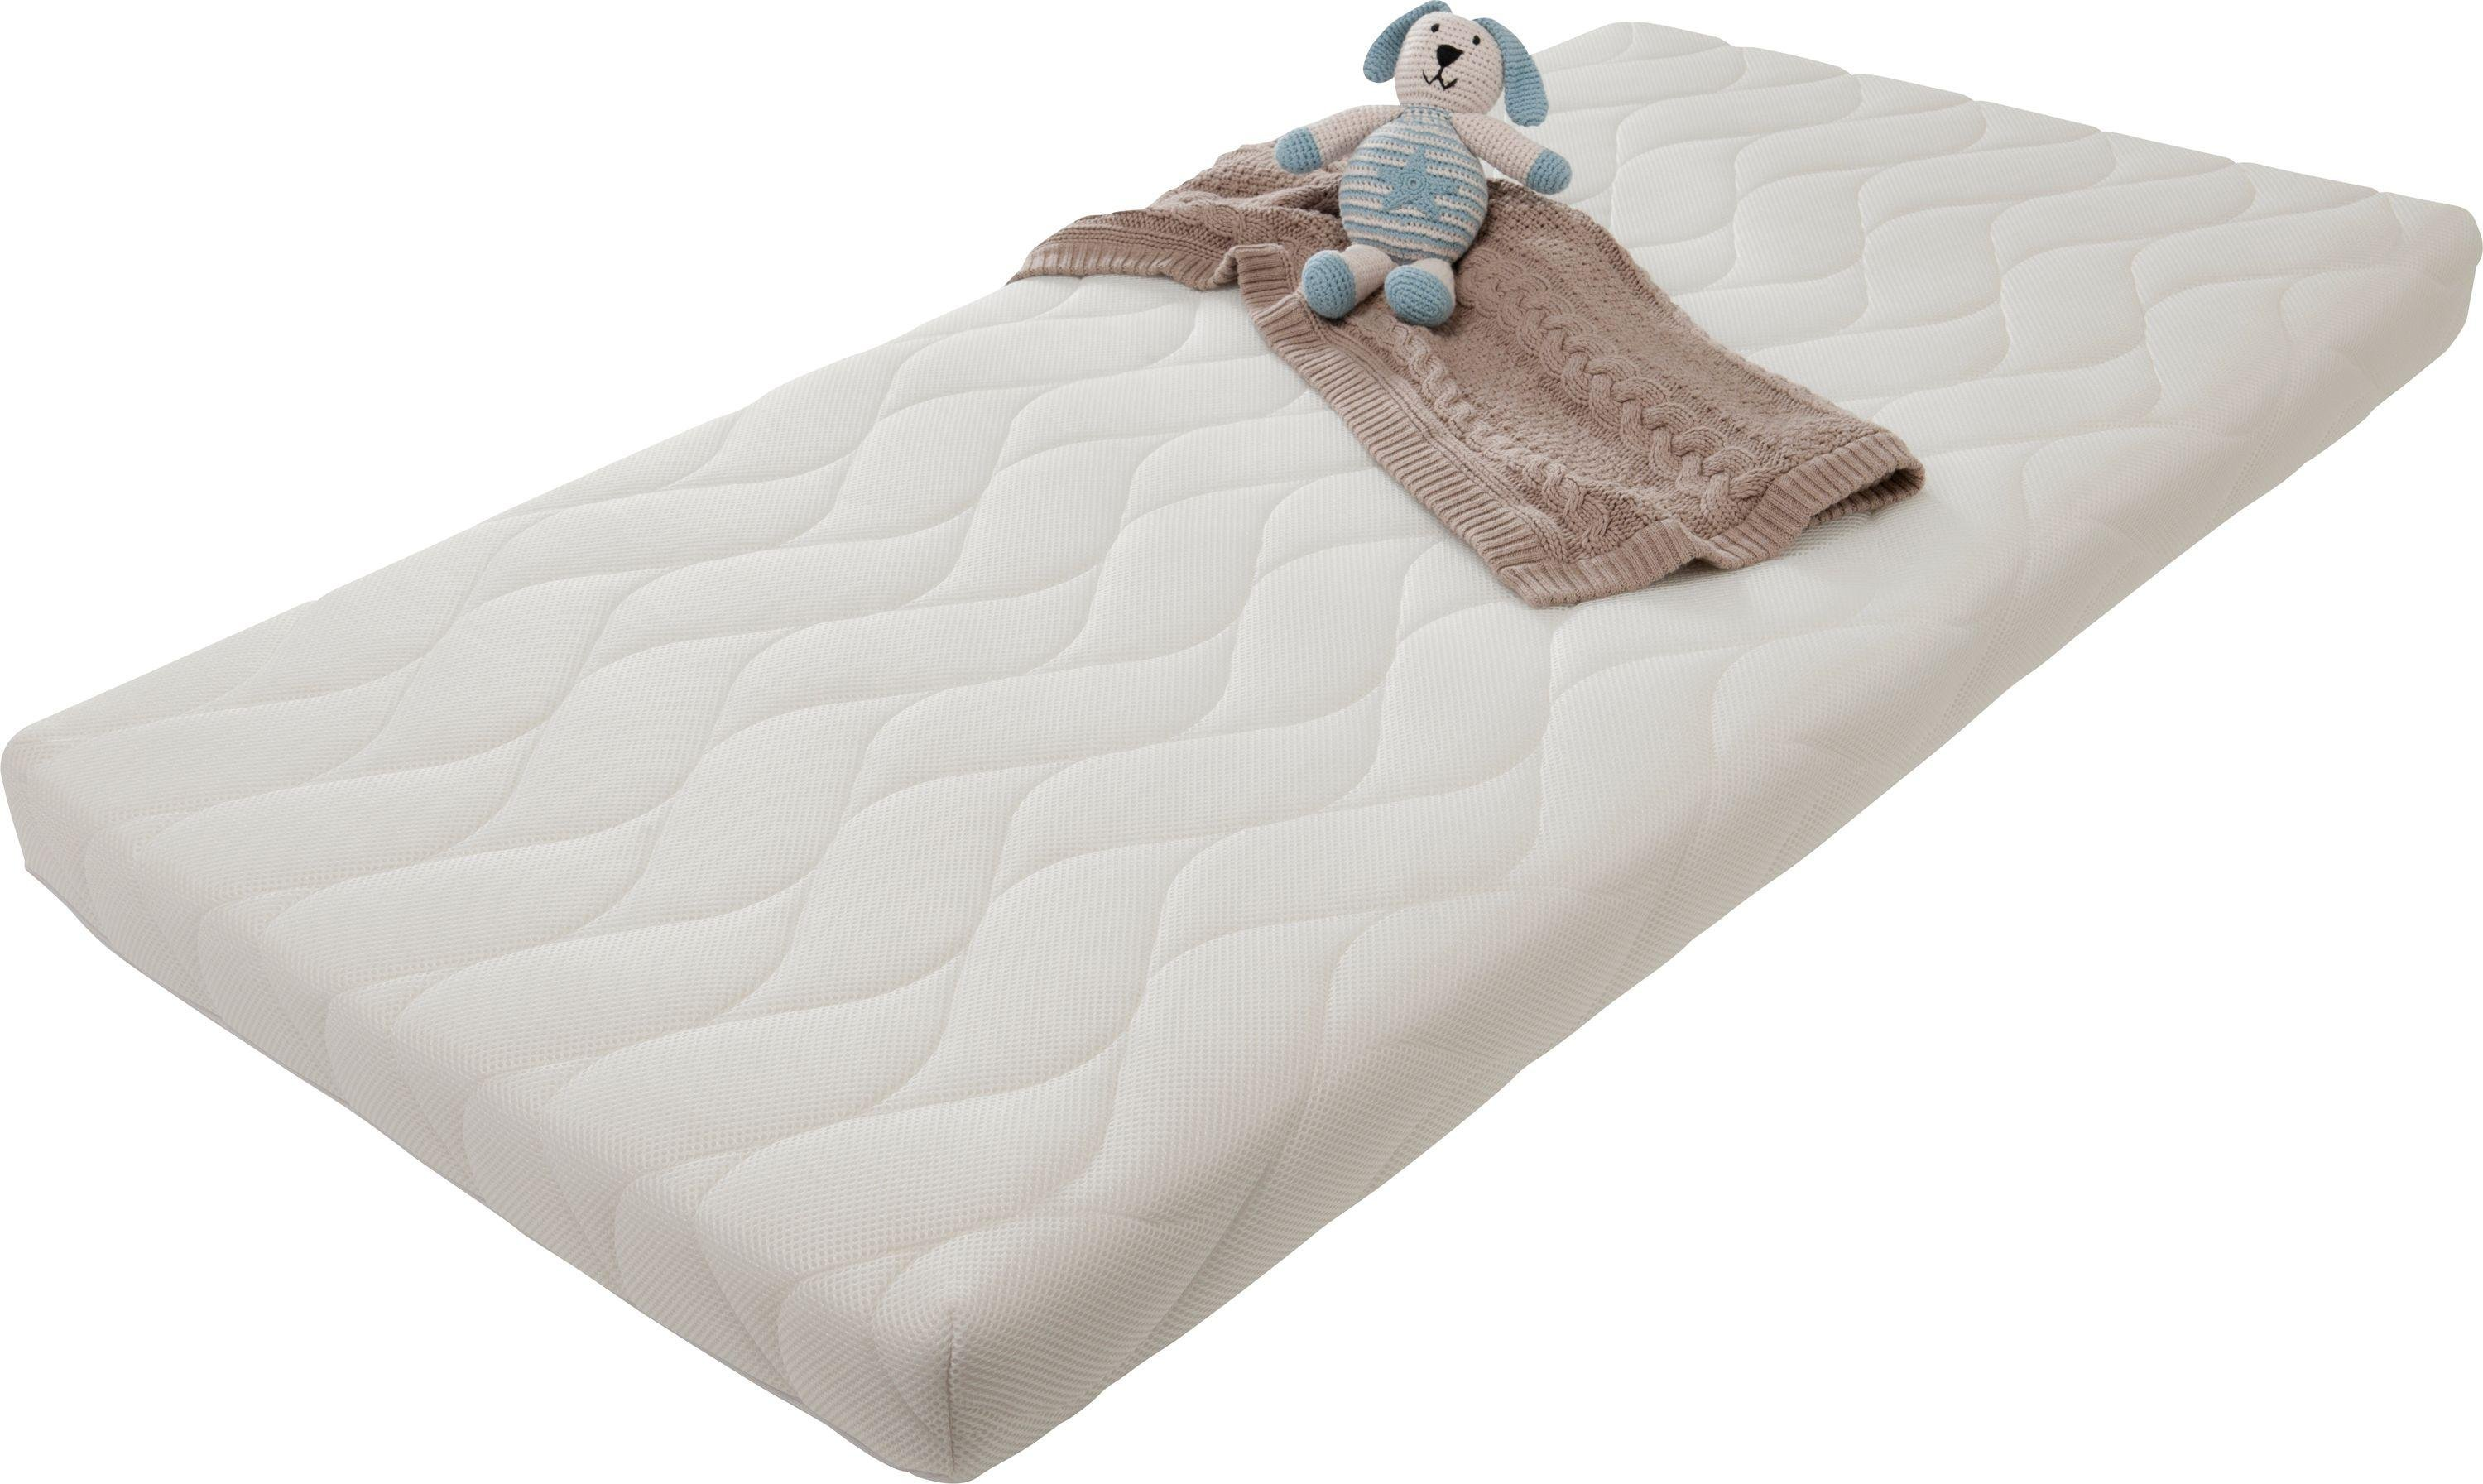 Folding Travel Cot Mattress Cot Mattress Cot Mattress